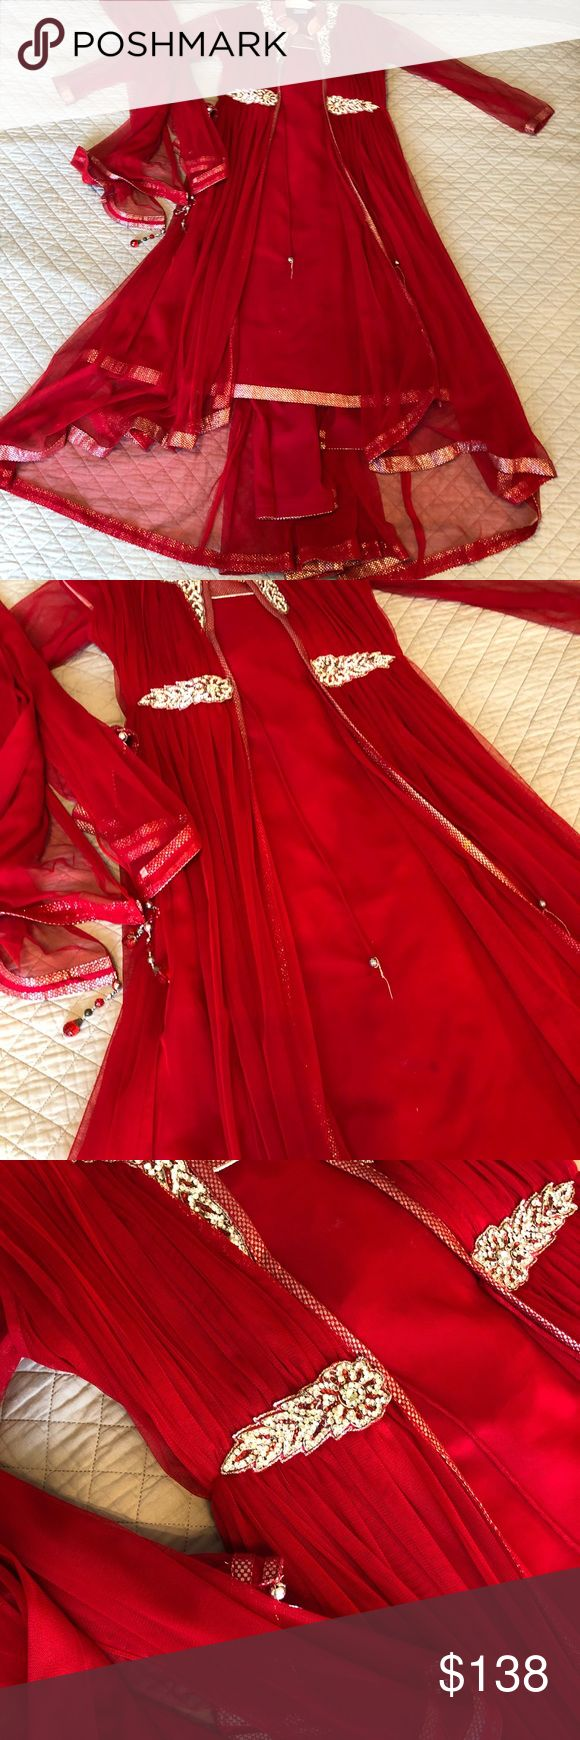 Pakistani / Indian Dress Anarkali Shalwar Kameez Pakistani / Indian Dress Anarkali Shalwar Kameez red - worn once - size small - comes with matching pants and dupatta Dresses